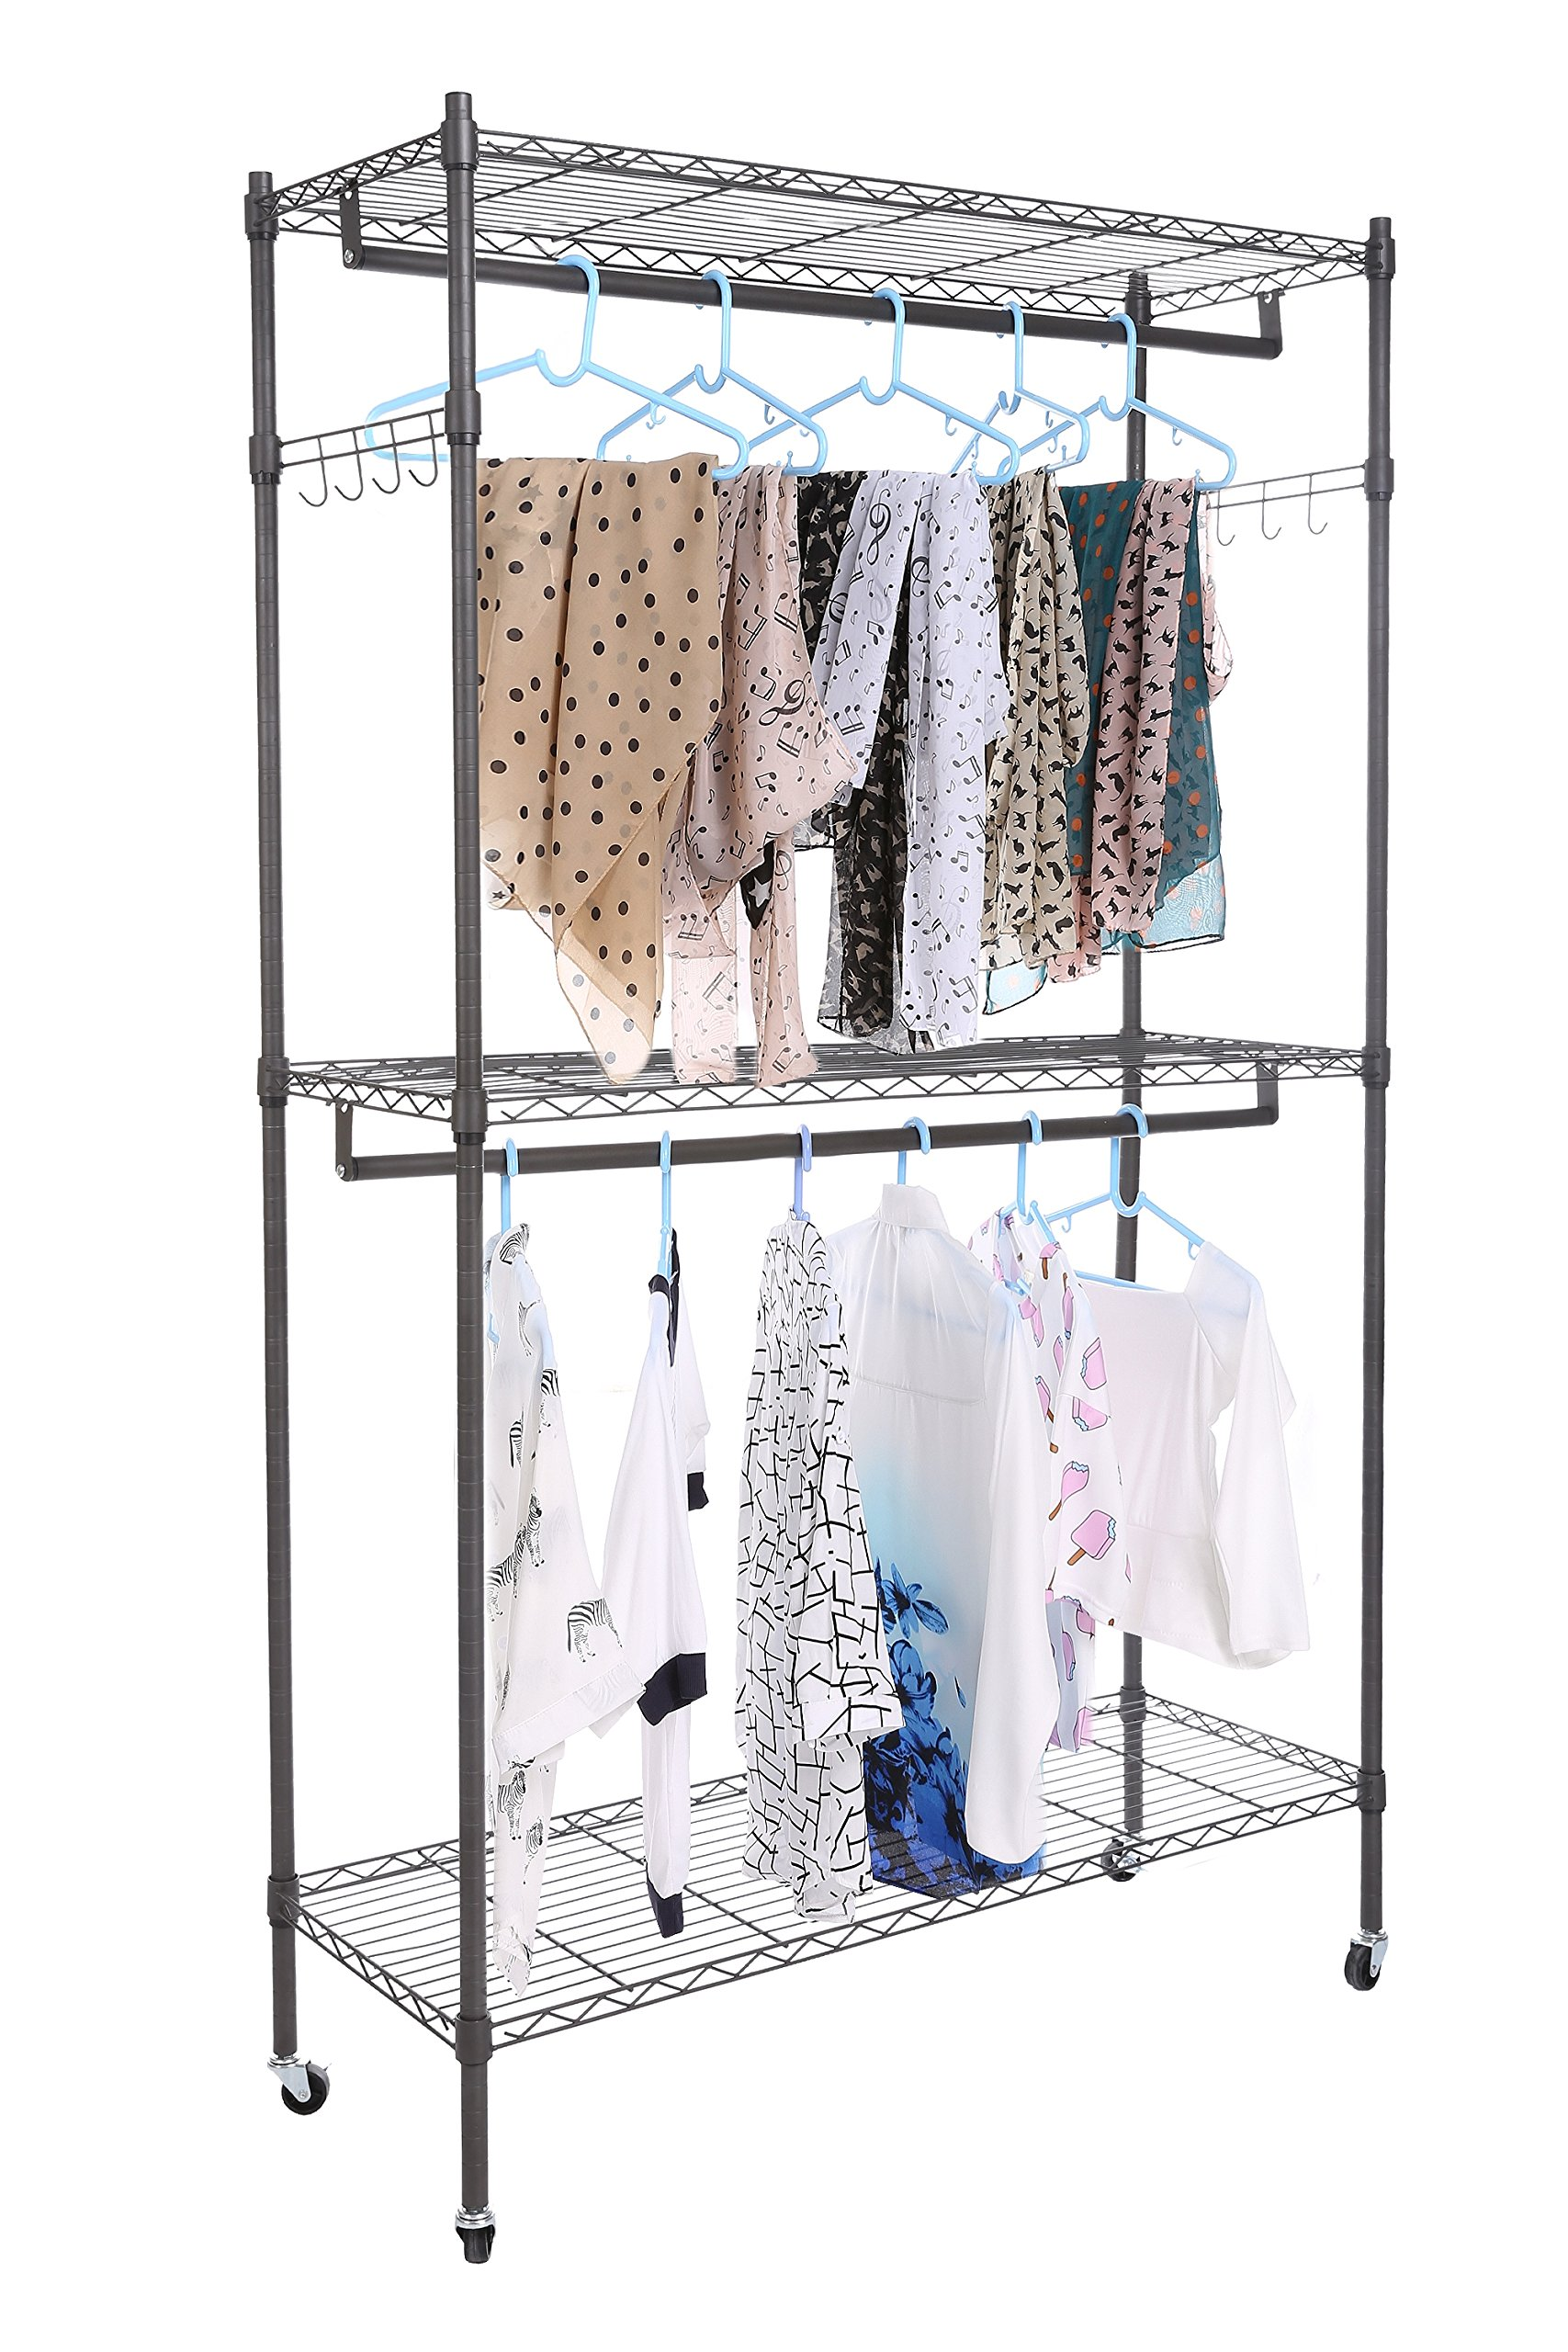 Hanging Display Rack for Clothes, Cheesea Clothes Display Rack Store with 3 Shelves Wire, Wheels and Side Hooks, Clothes Display Racks Heavy Duty for Bedroom/Lanudry Room/Hotel, Gray